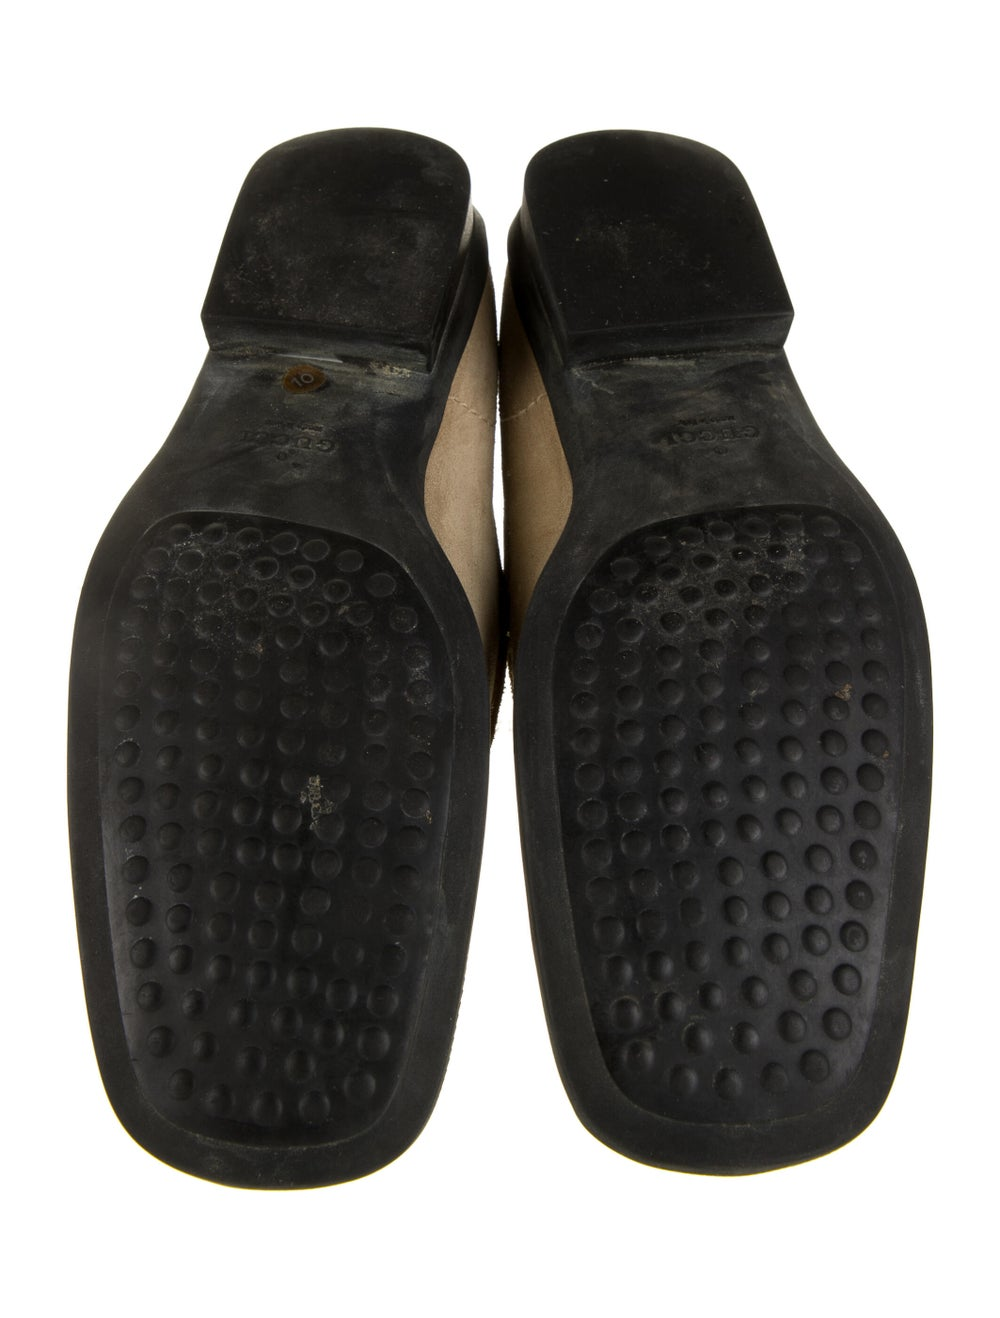 Gucci Suede Dress Loafers - image 5